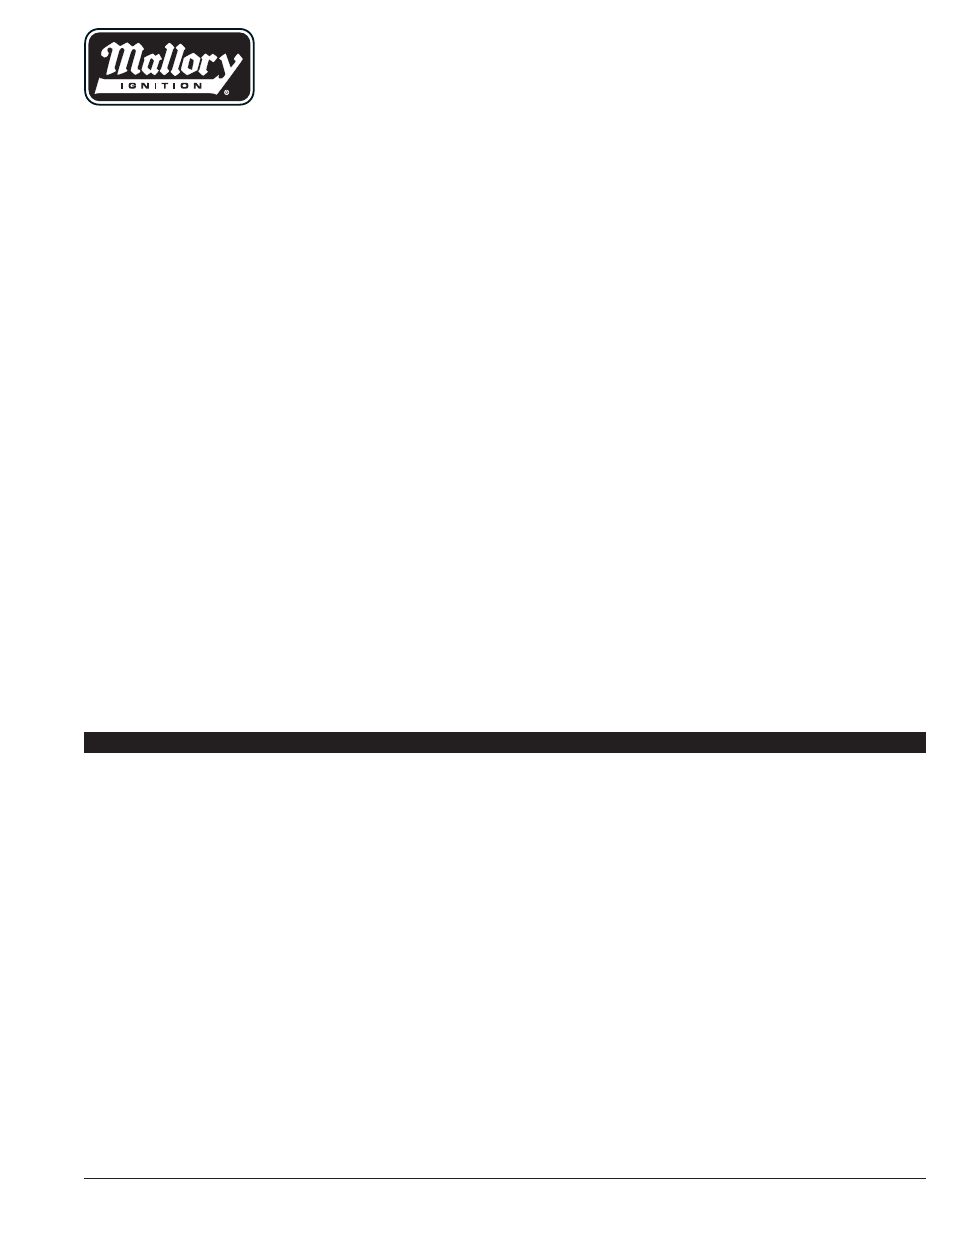 hight resolution of mallory 685 ignition wiring diagram wiring diagrams rh 4 4 51 jennifer retzke de mallory hyfire